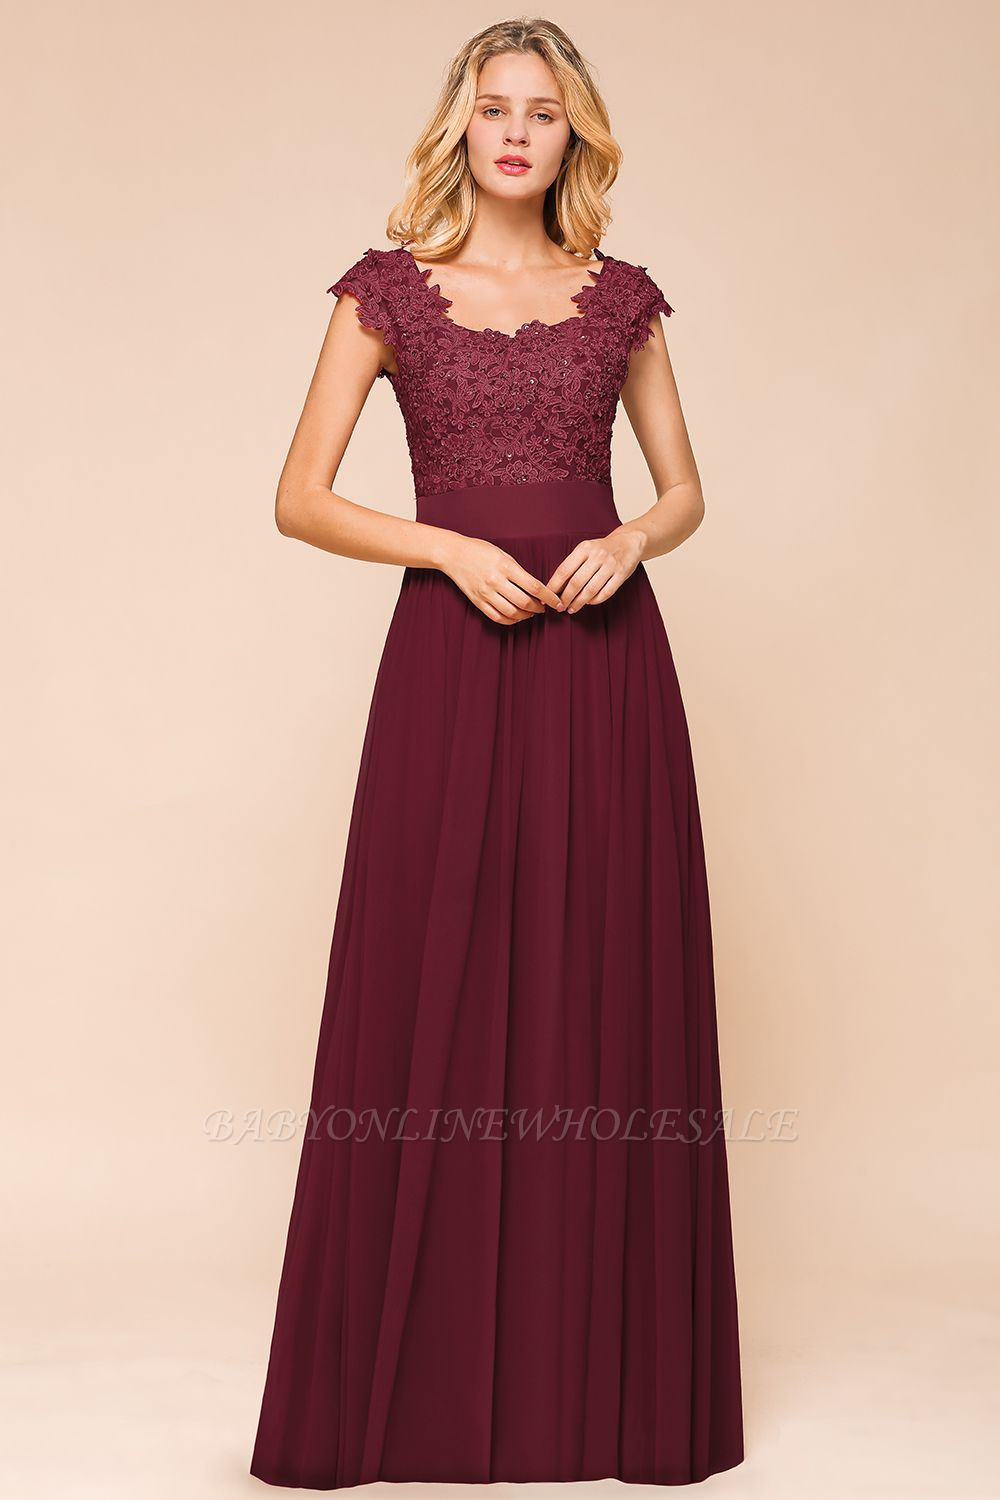 Burgundy Cap sleeves Lace Evening Gowns with Appliques | Cheap Chiffon Long Mother of the bride dress